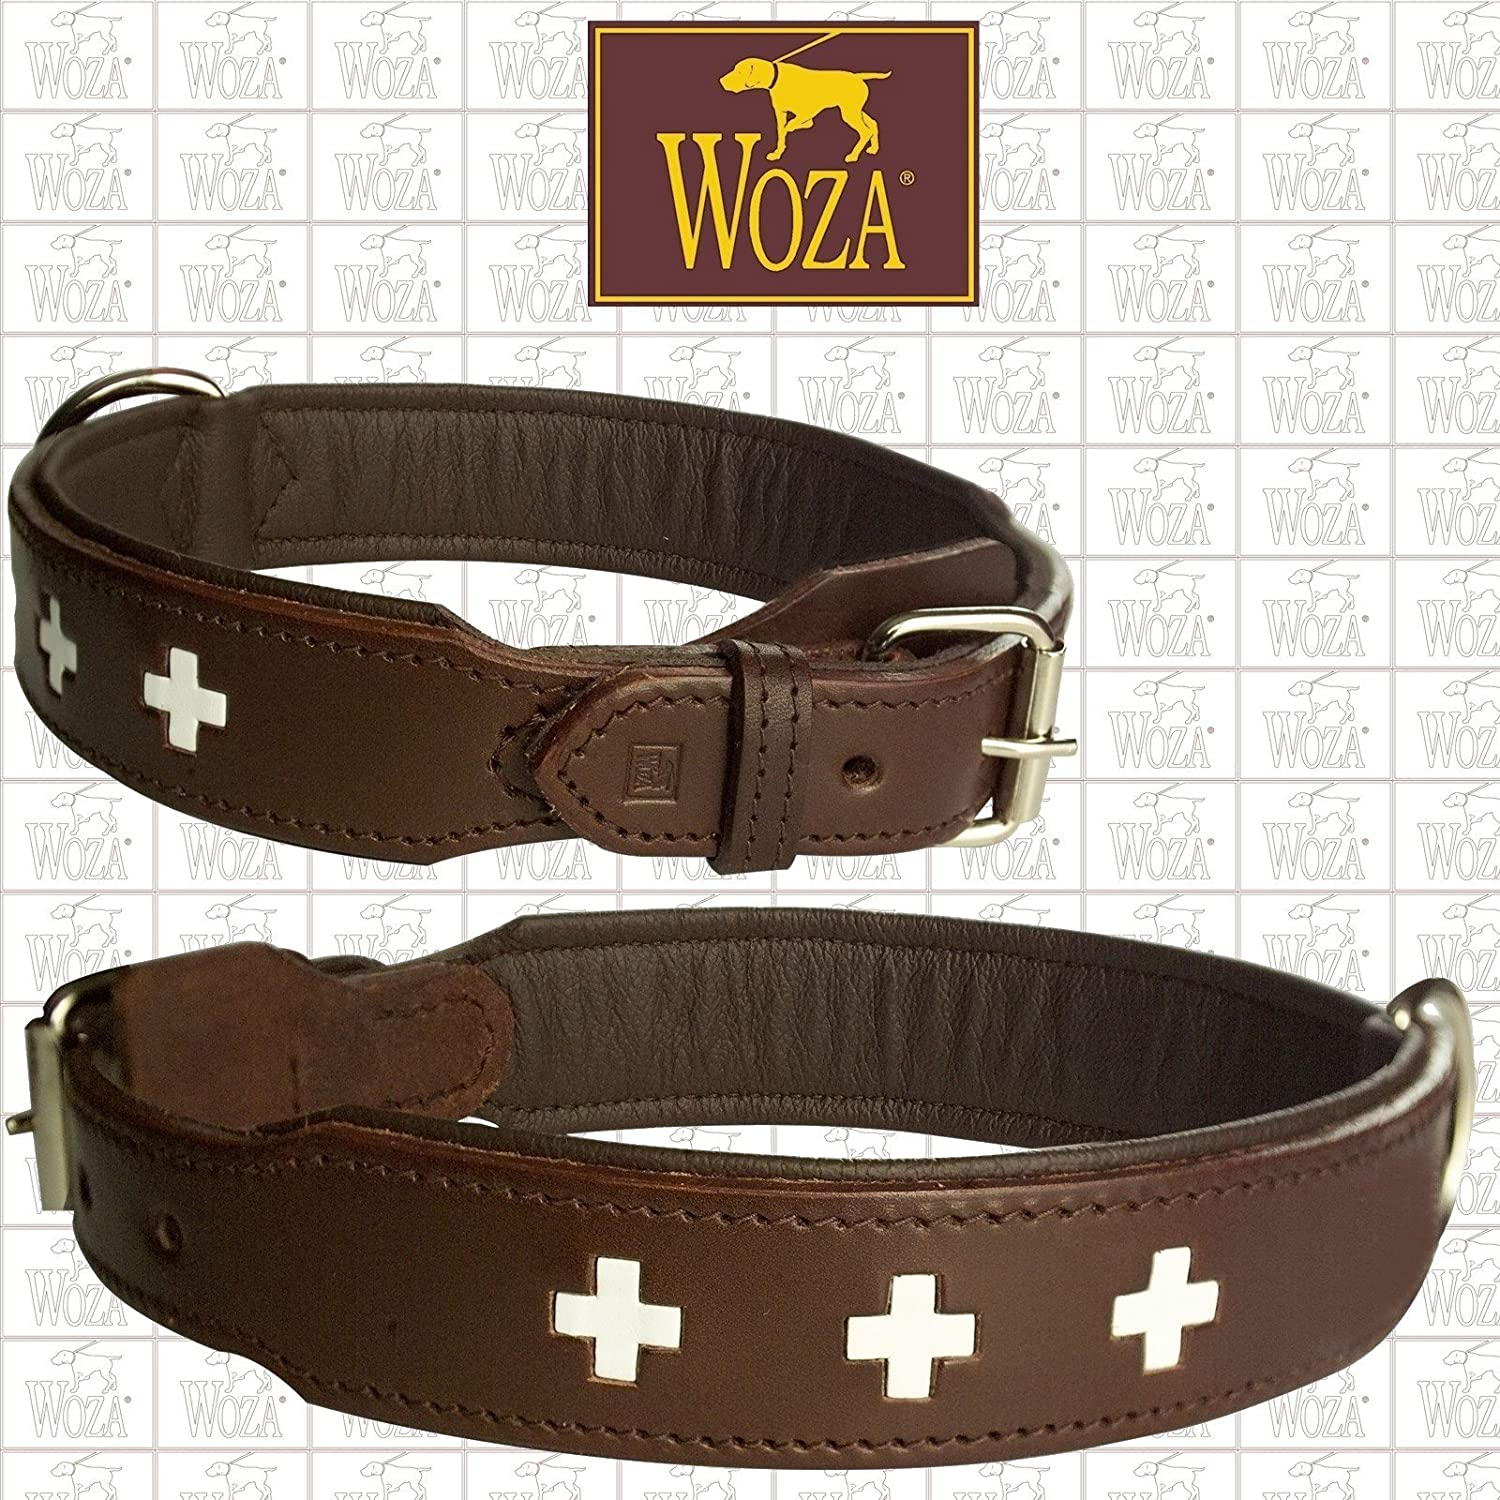 Exclusive dog collar 3.8 60 cm Swiss Berner Sennn Woza Full-Grain Leather Brown Nappa Cowhide Leather Handmade Collar